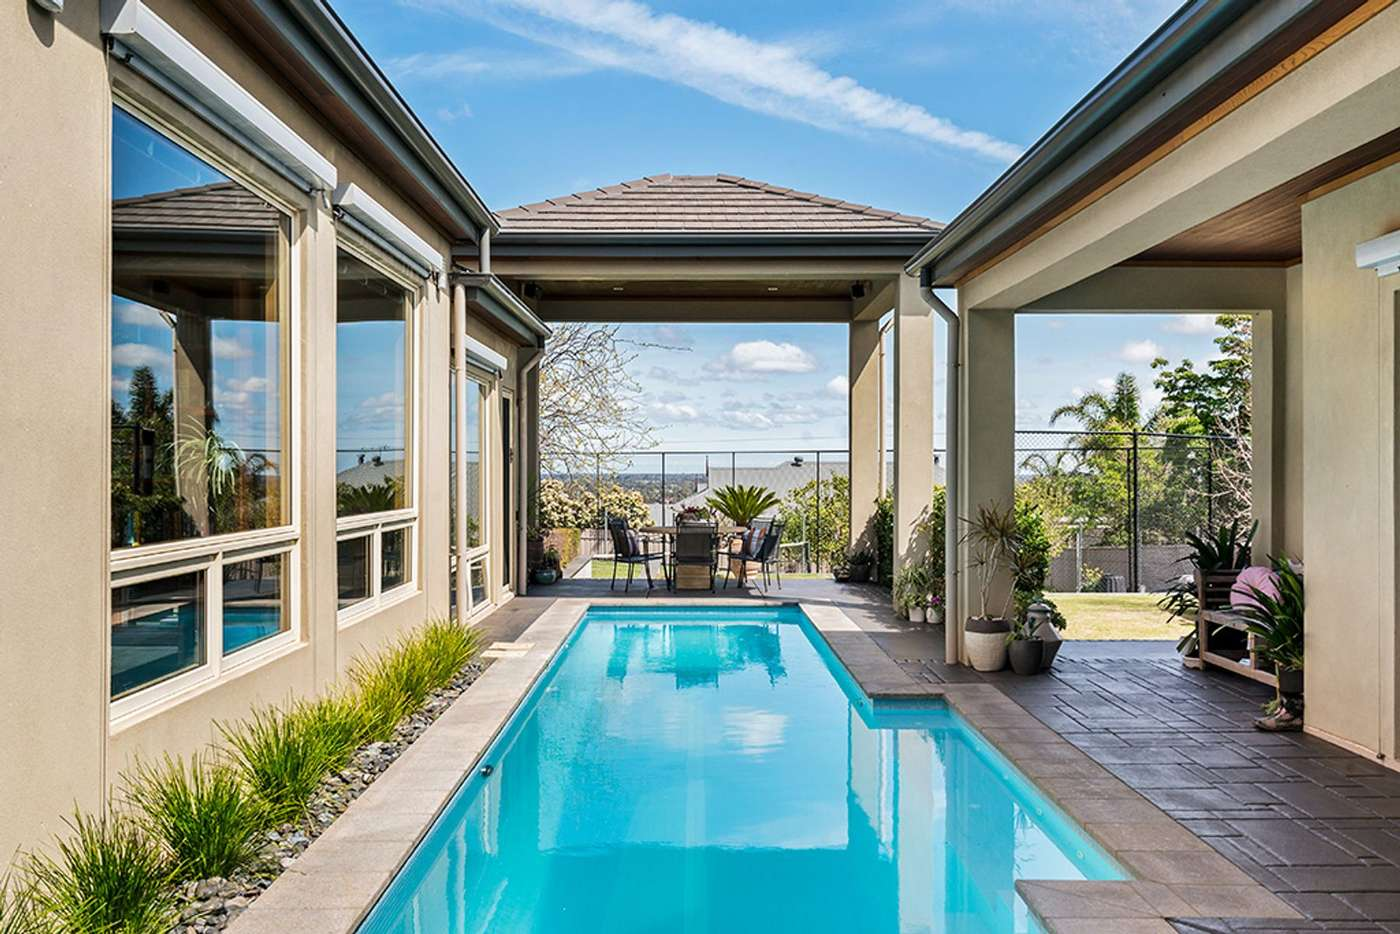 Main view of Homely house listing, 51 Gawler Terrace, Gawler South, SA 5118